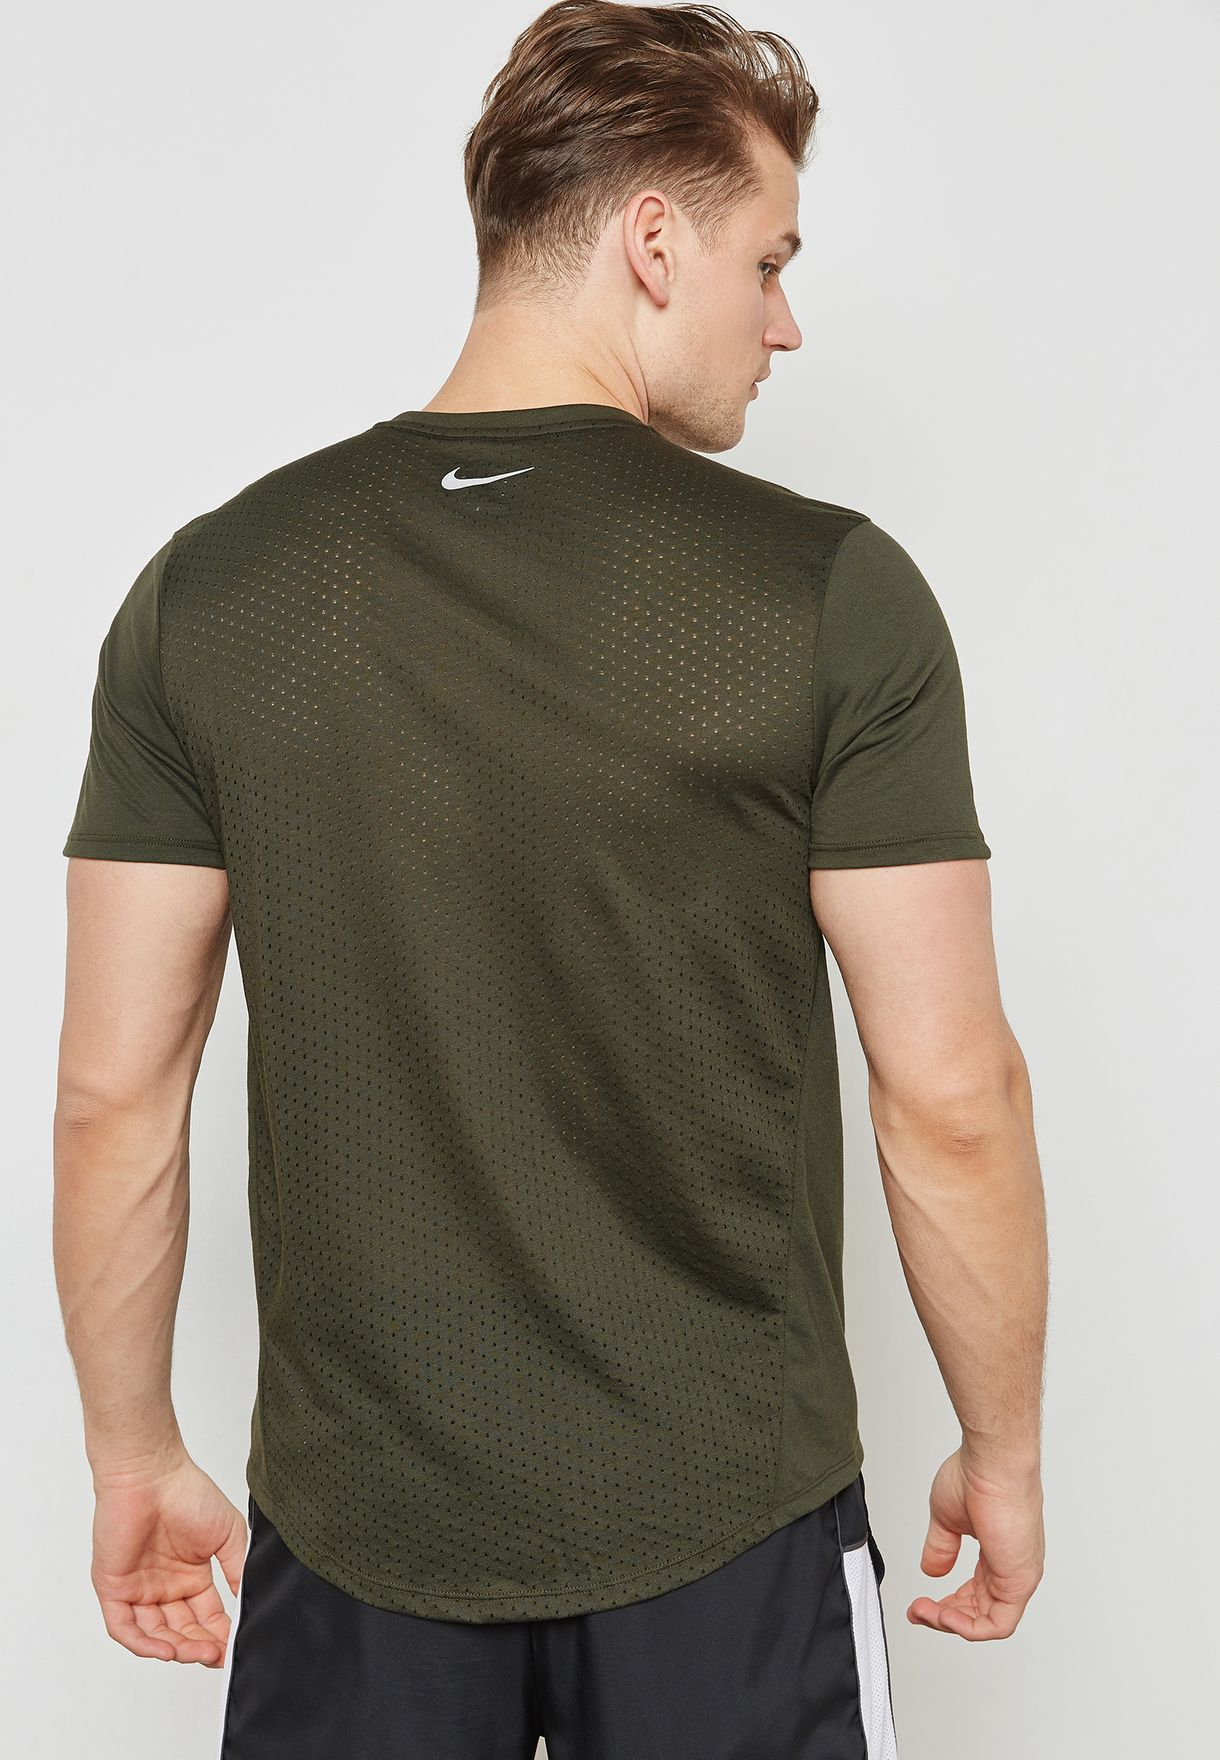 74106298 Shop Nike green Breathe Tailwind T-Shirt 892813-355 for Men in ...